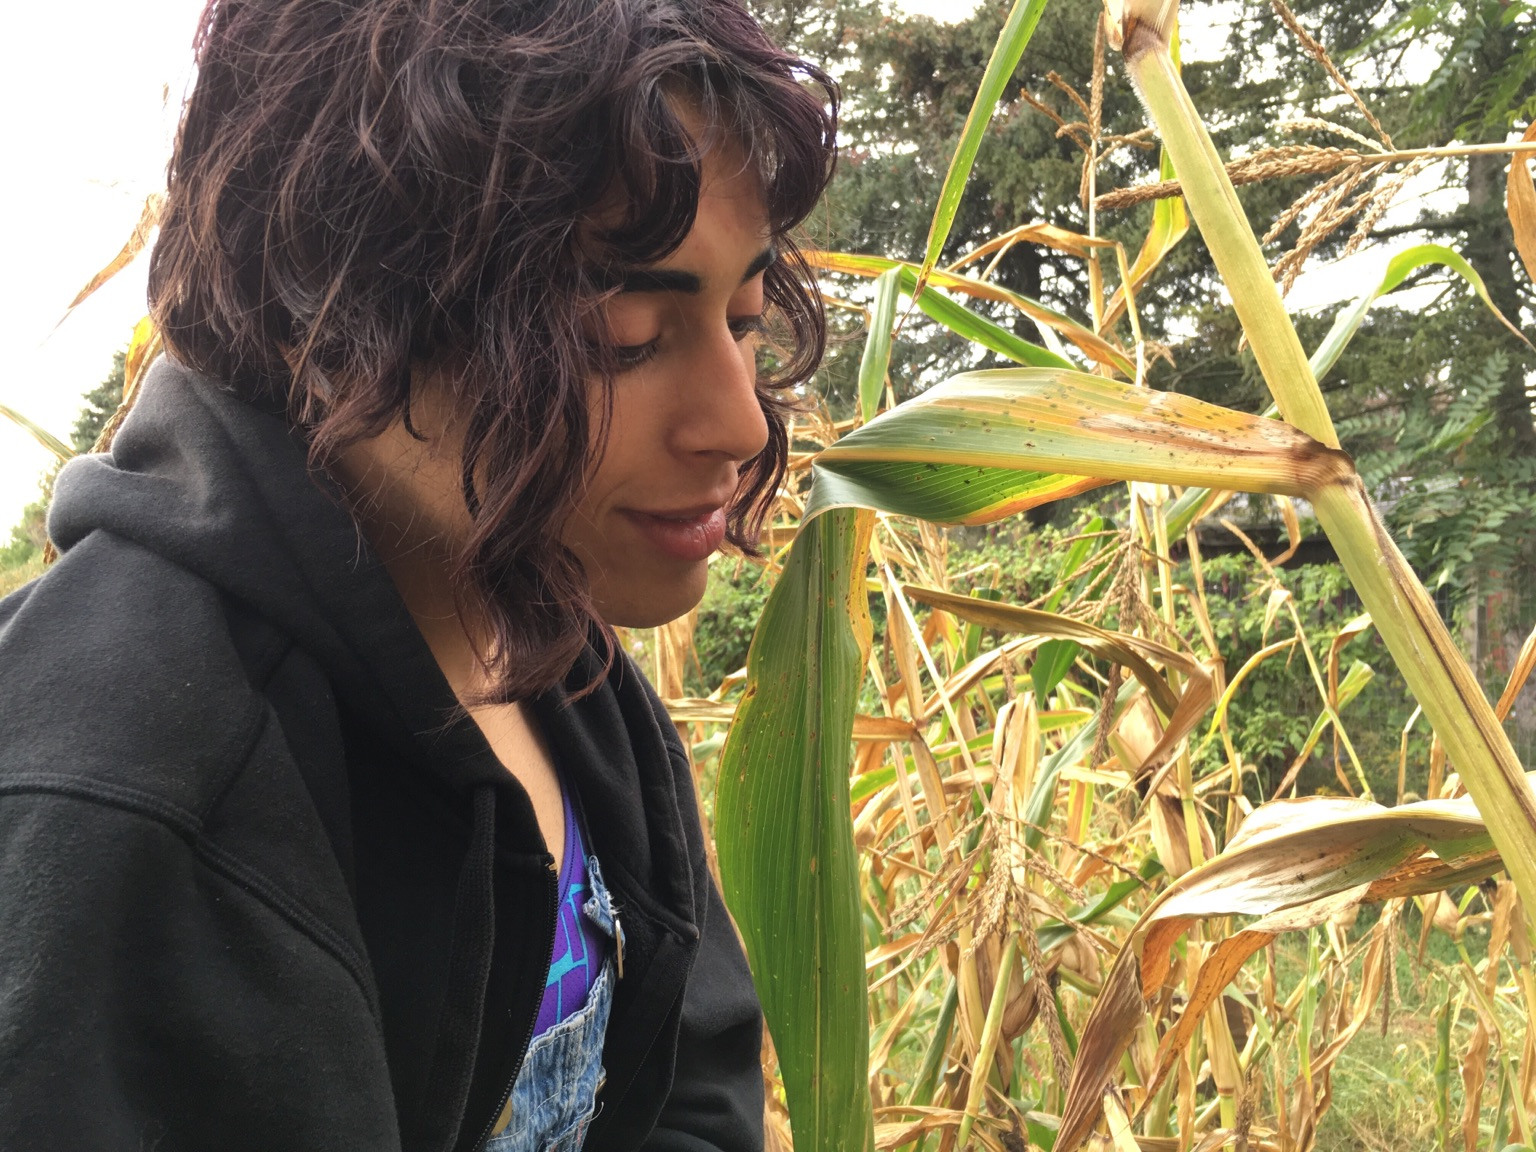 May - May grew up in Madison, Wisconsin and has been farming in Connecticut, Wisconsin and Minnesota. She writes music that touches the soul with the help of her synthesizer and can often be found riding her skateboard or rocking out at a punk concert.